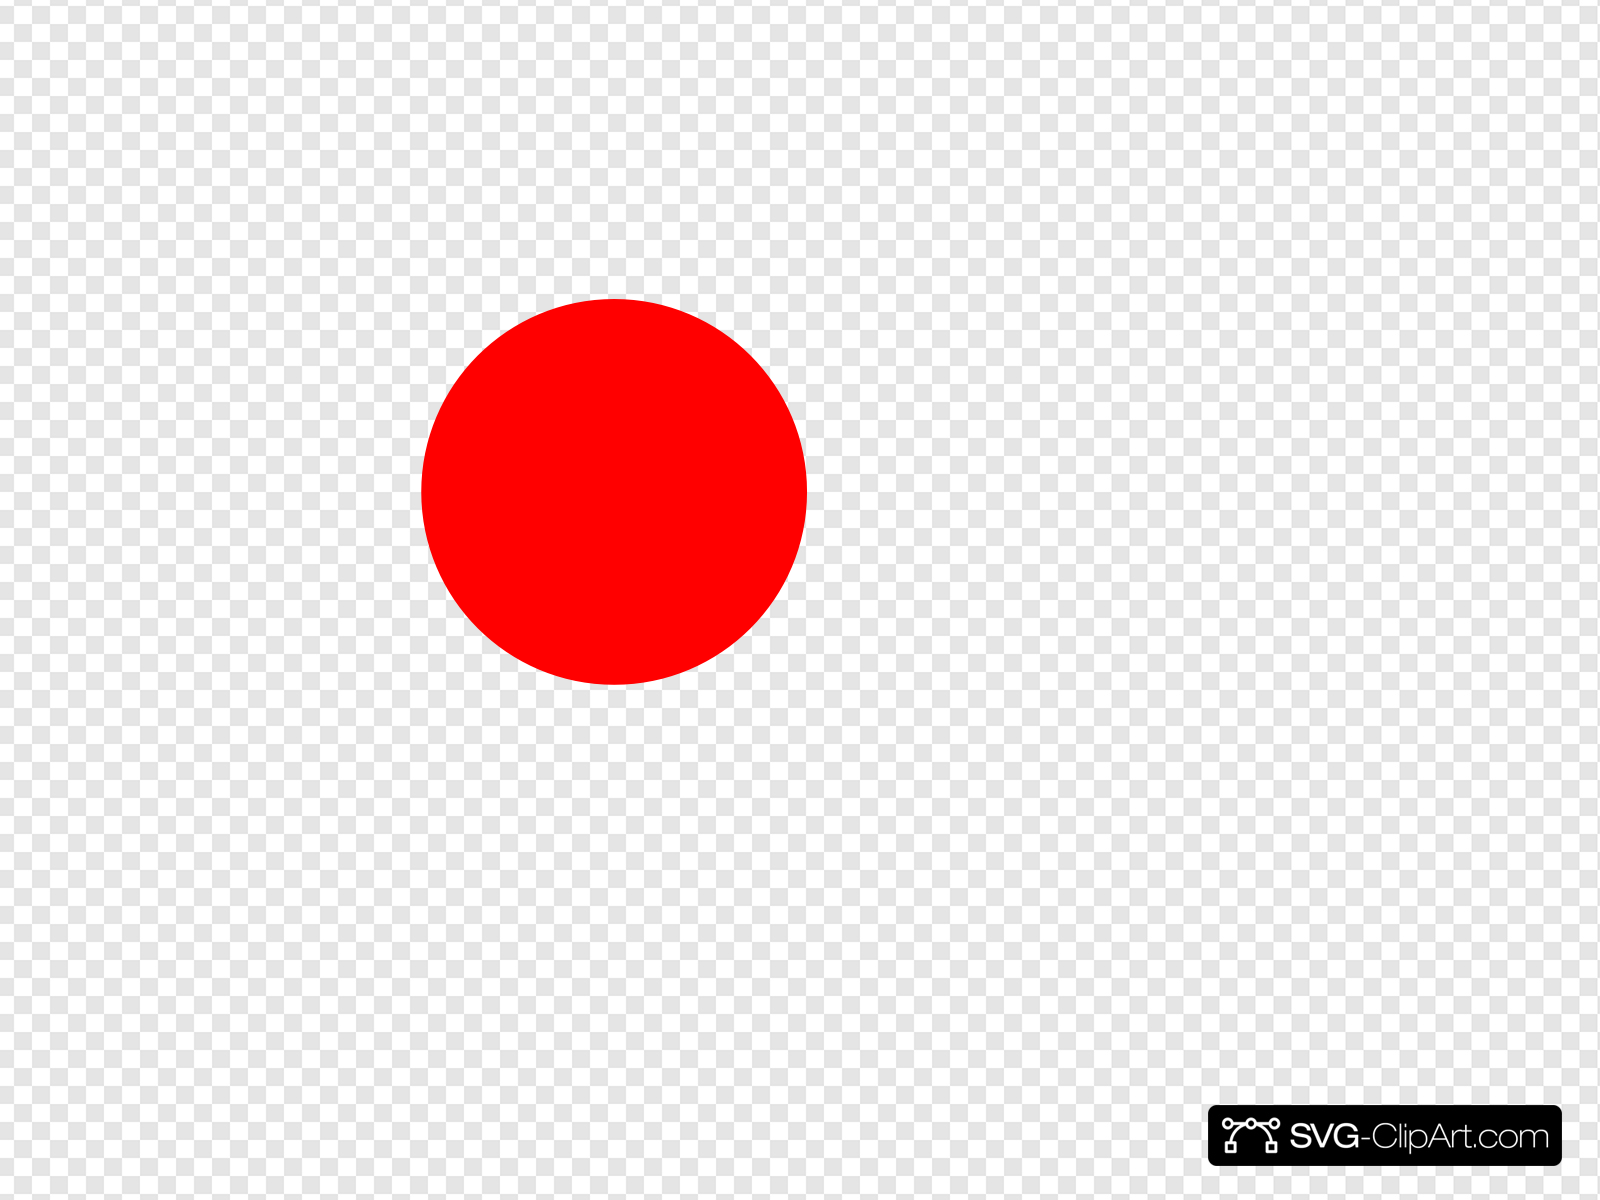 Red Dot Clip art, Icon and SVG.